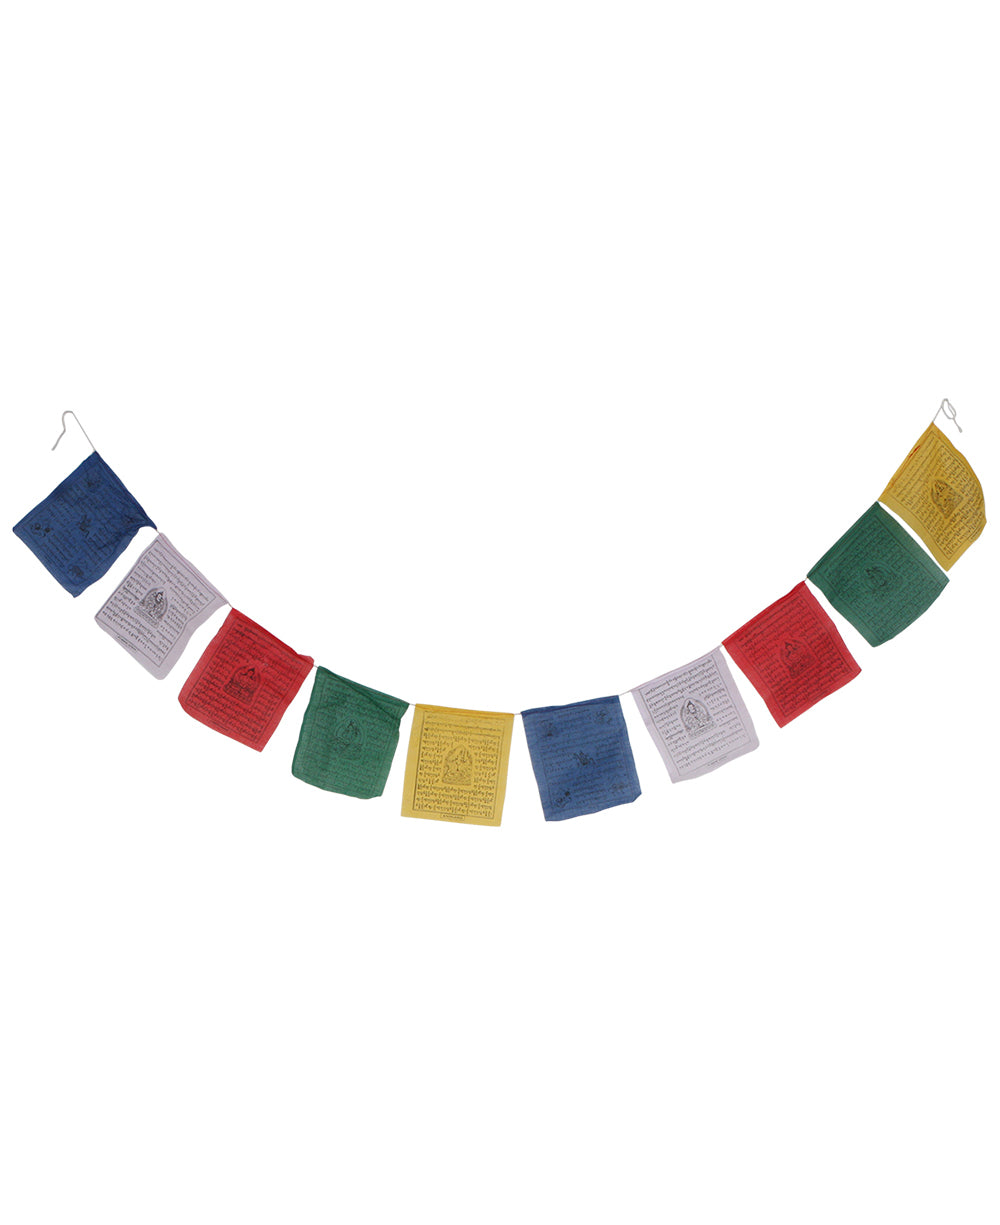 Traditional Prayer Flags